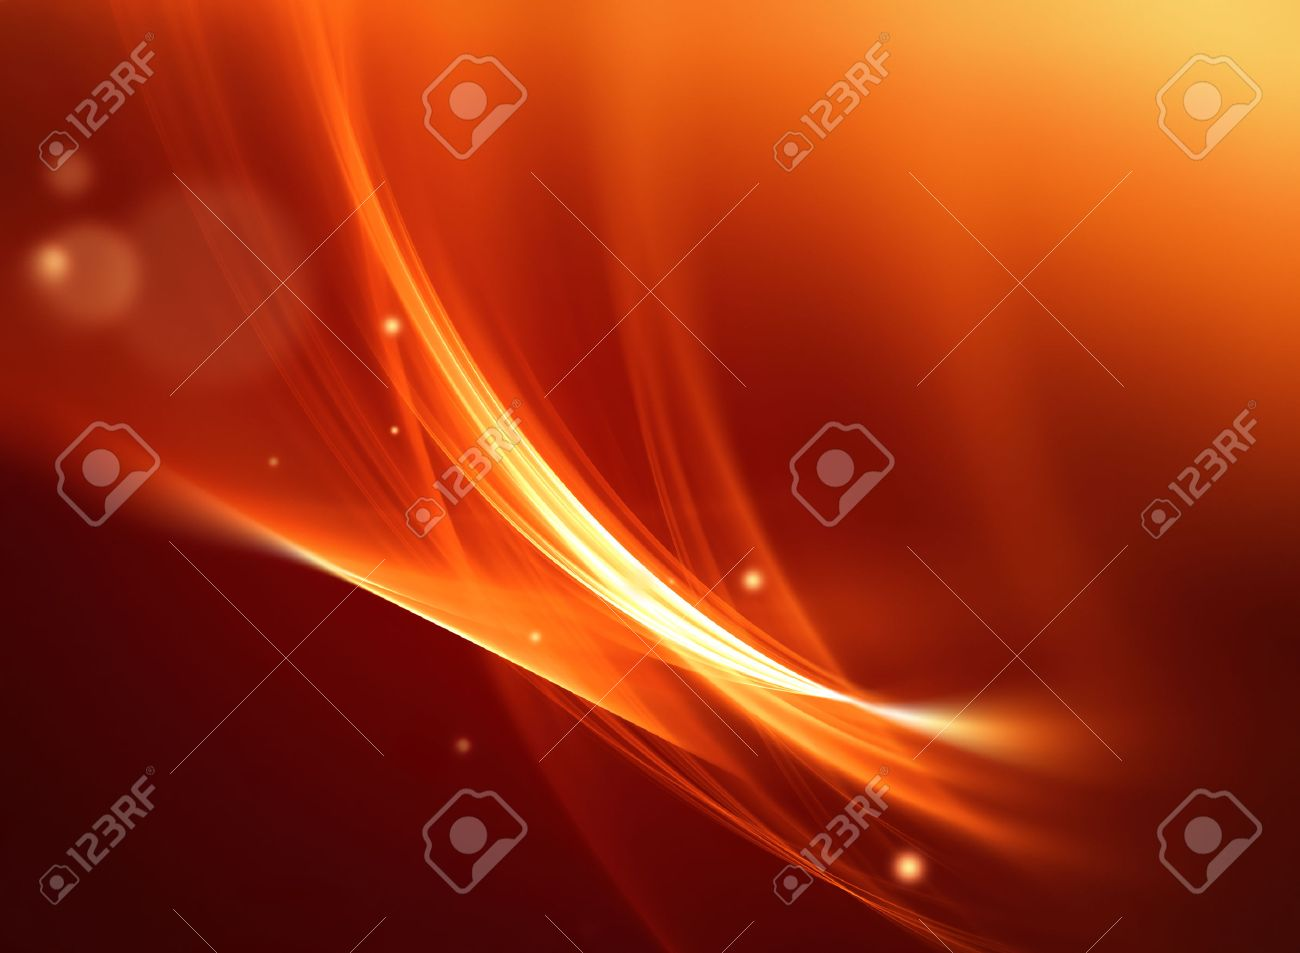 abstract fire background with smooth soft lines - 48540166